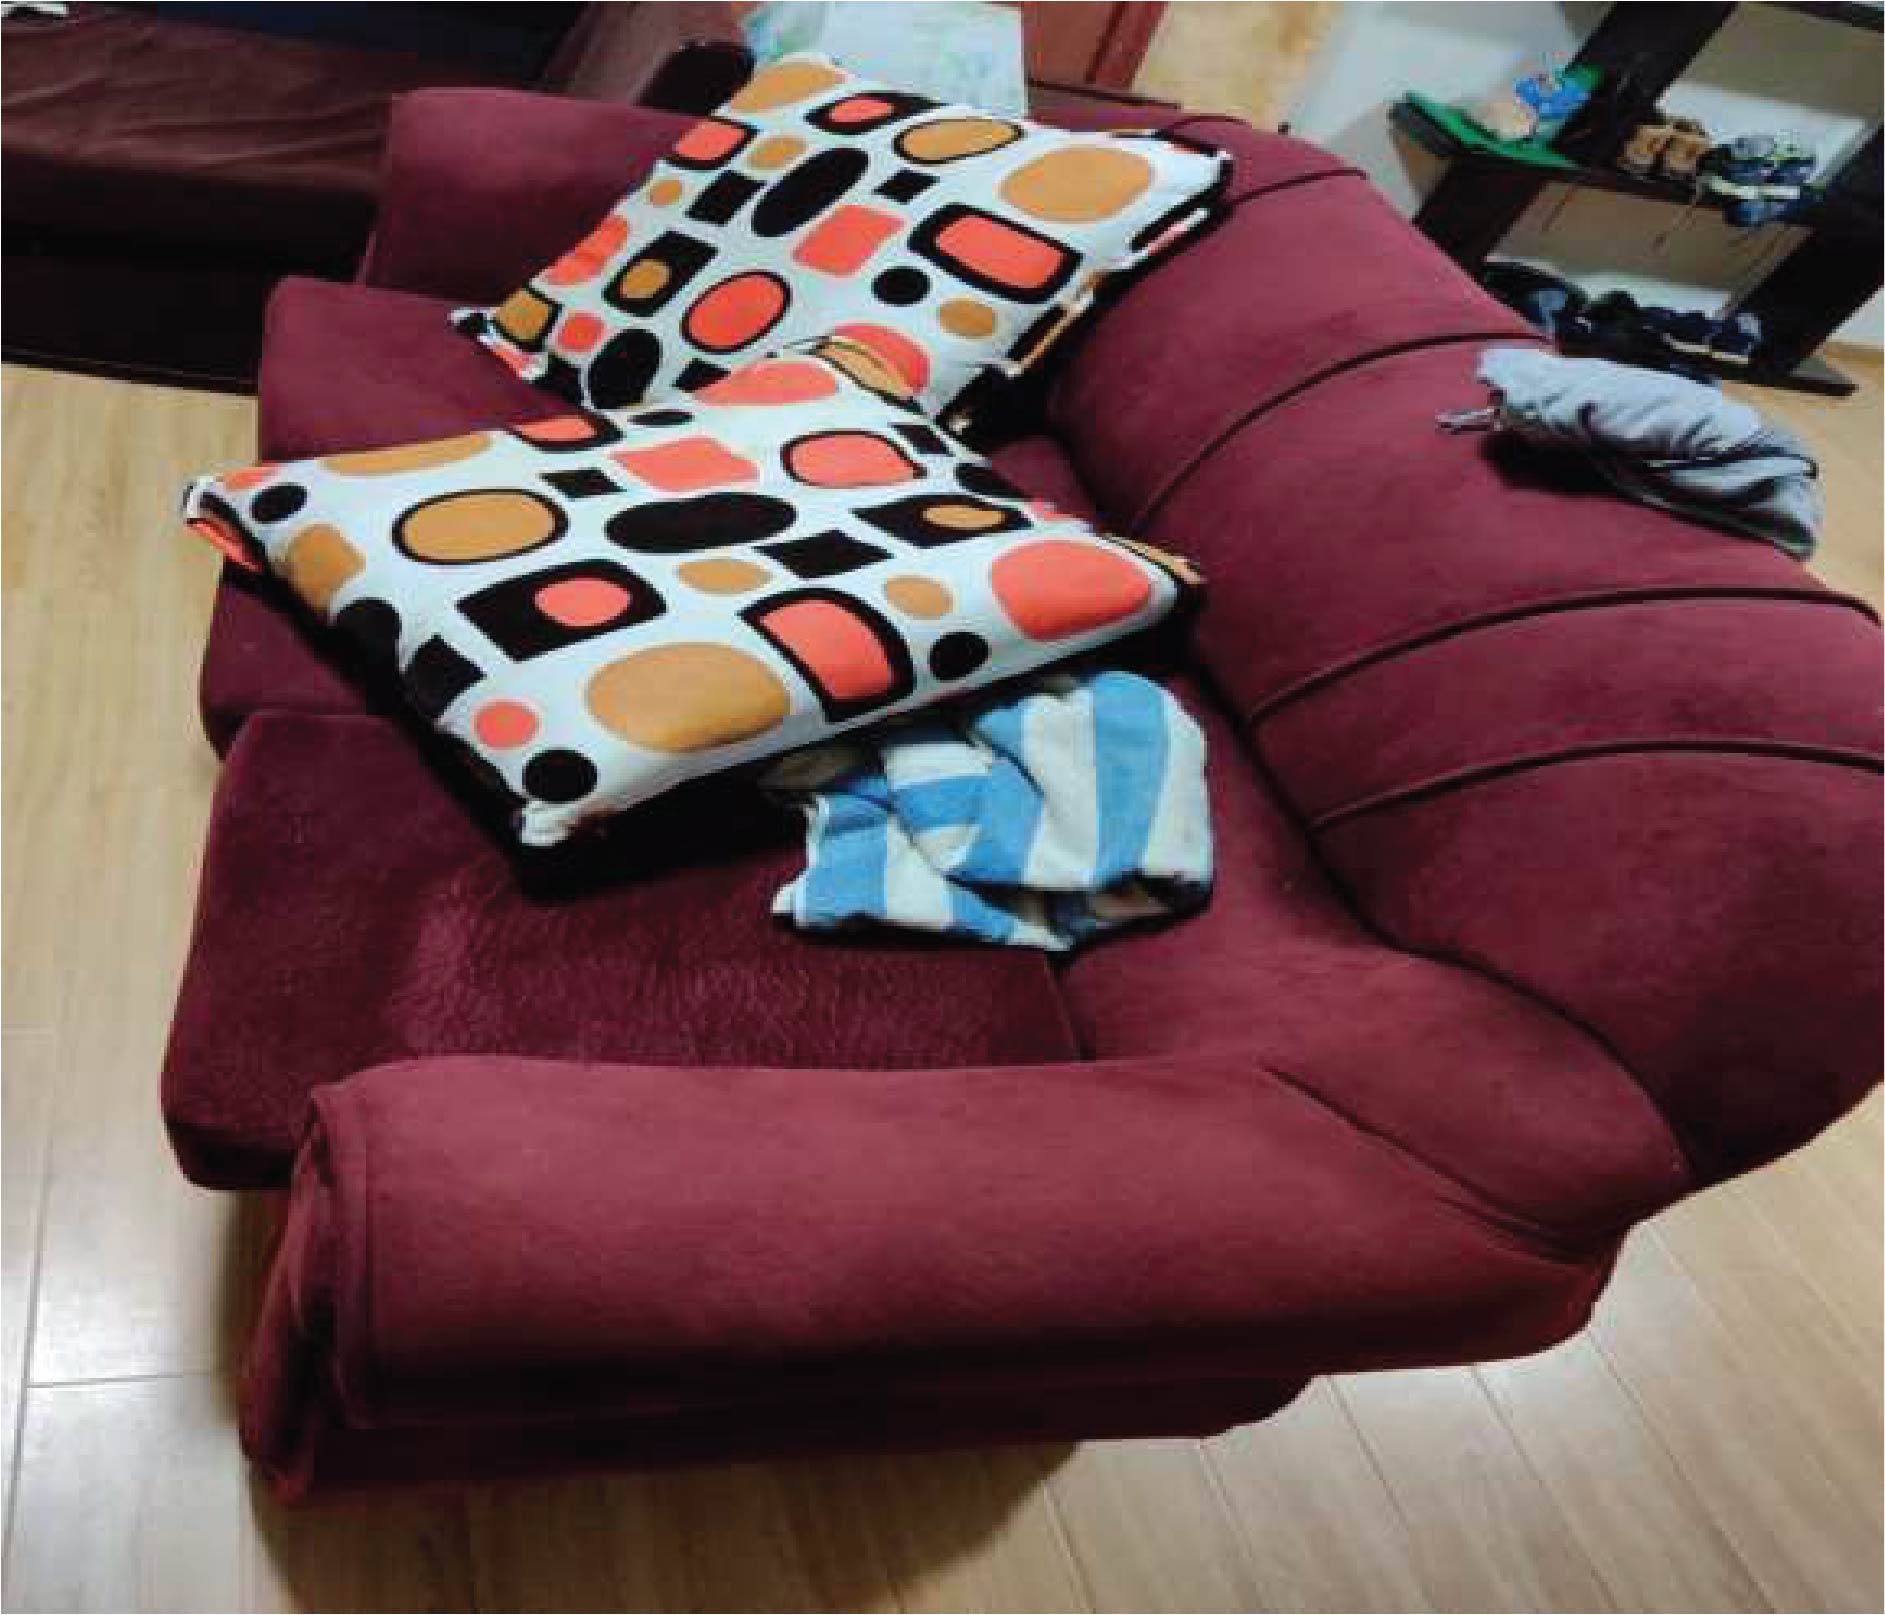 5 Seat Sofa set-with orange dots